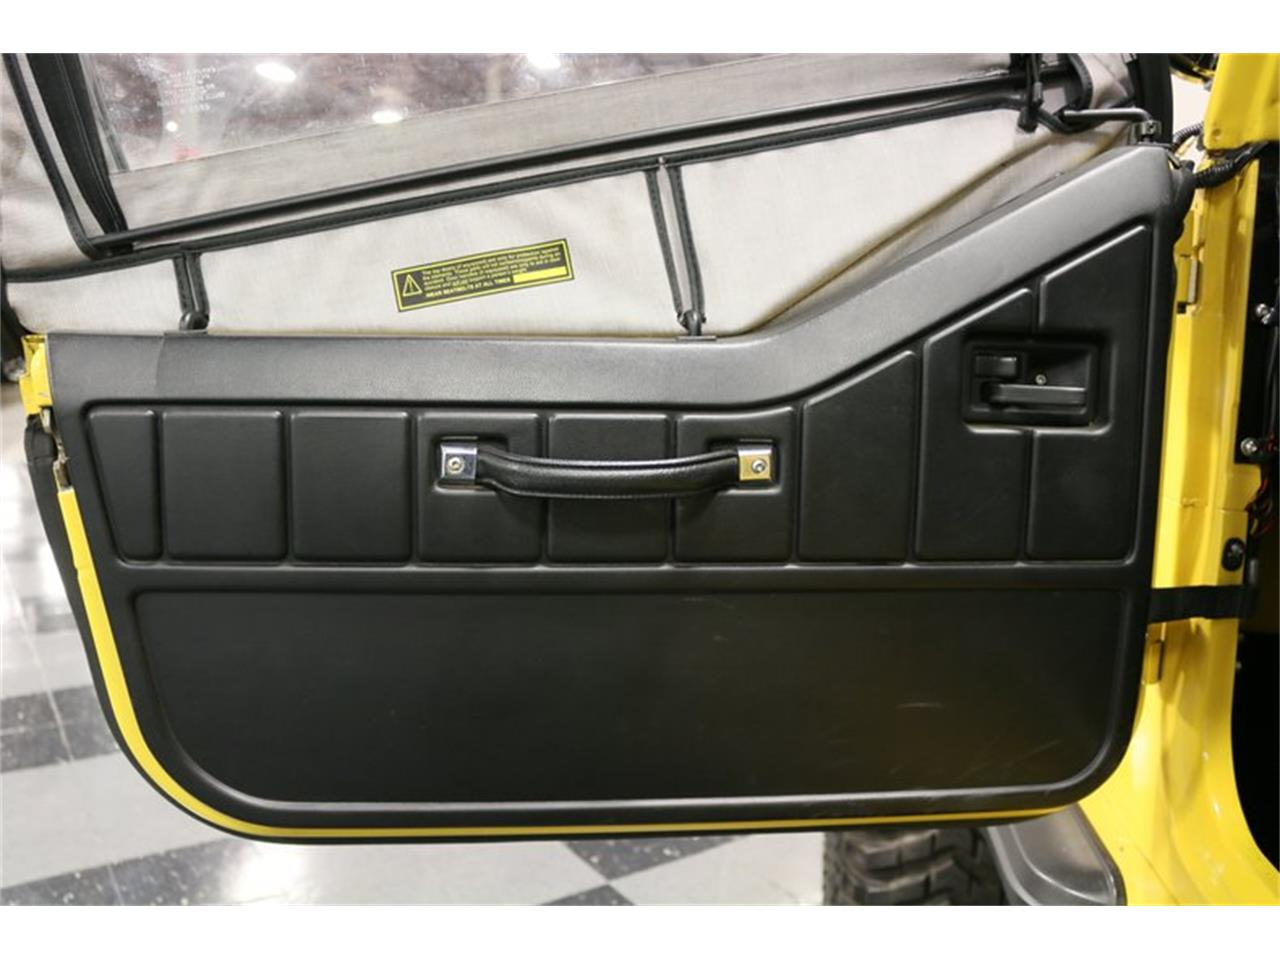 Large Picture of '93 Jeep Wrangler - $21,995.00 Offered by Streetside Classics - Dallas / Fort Worth - P701